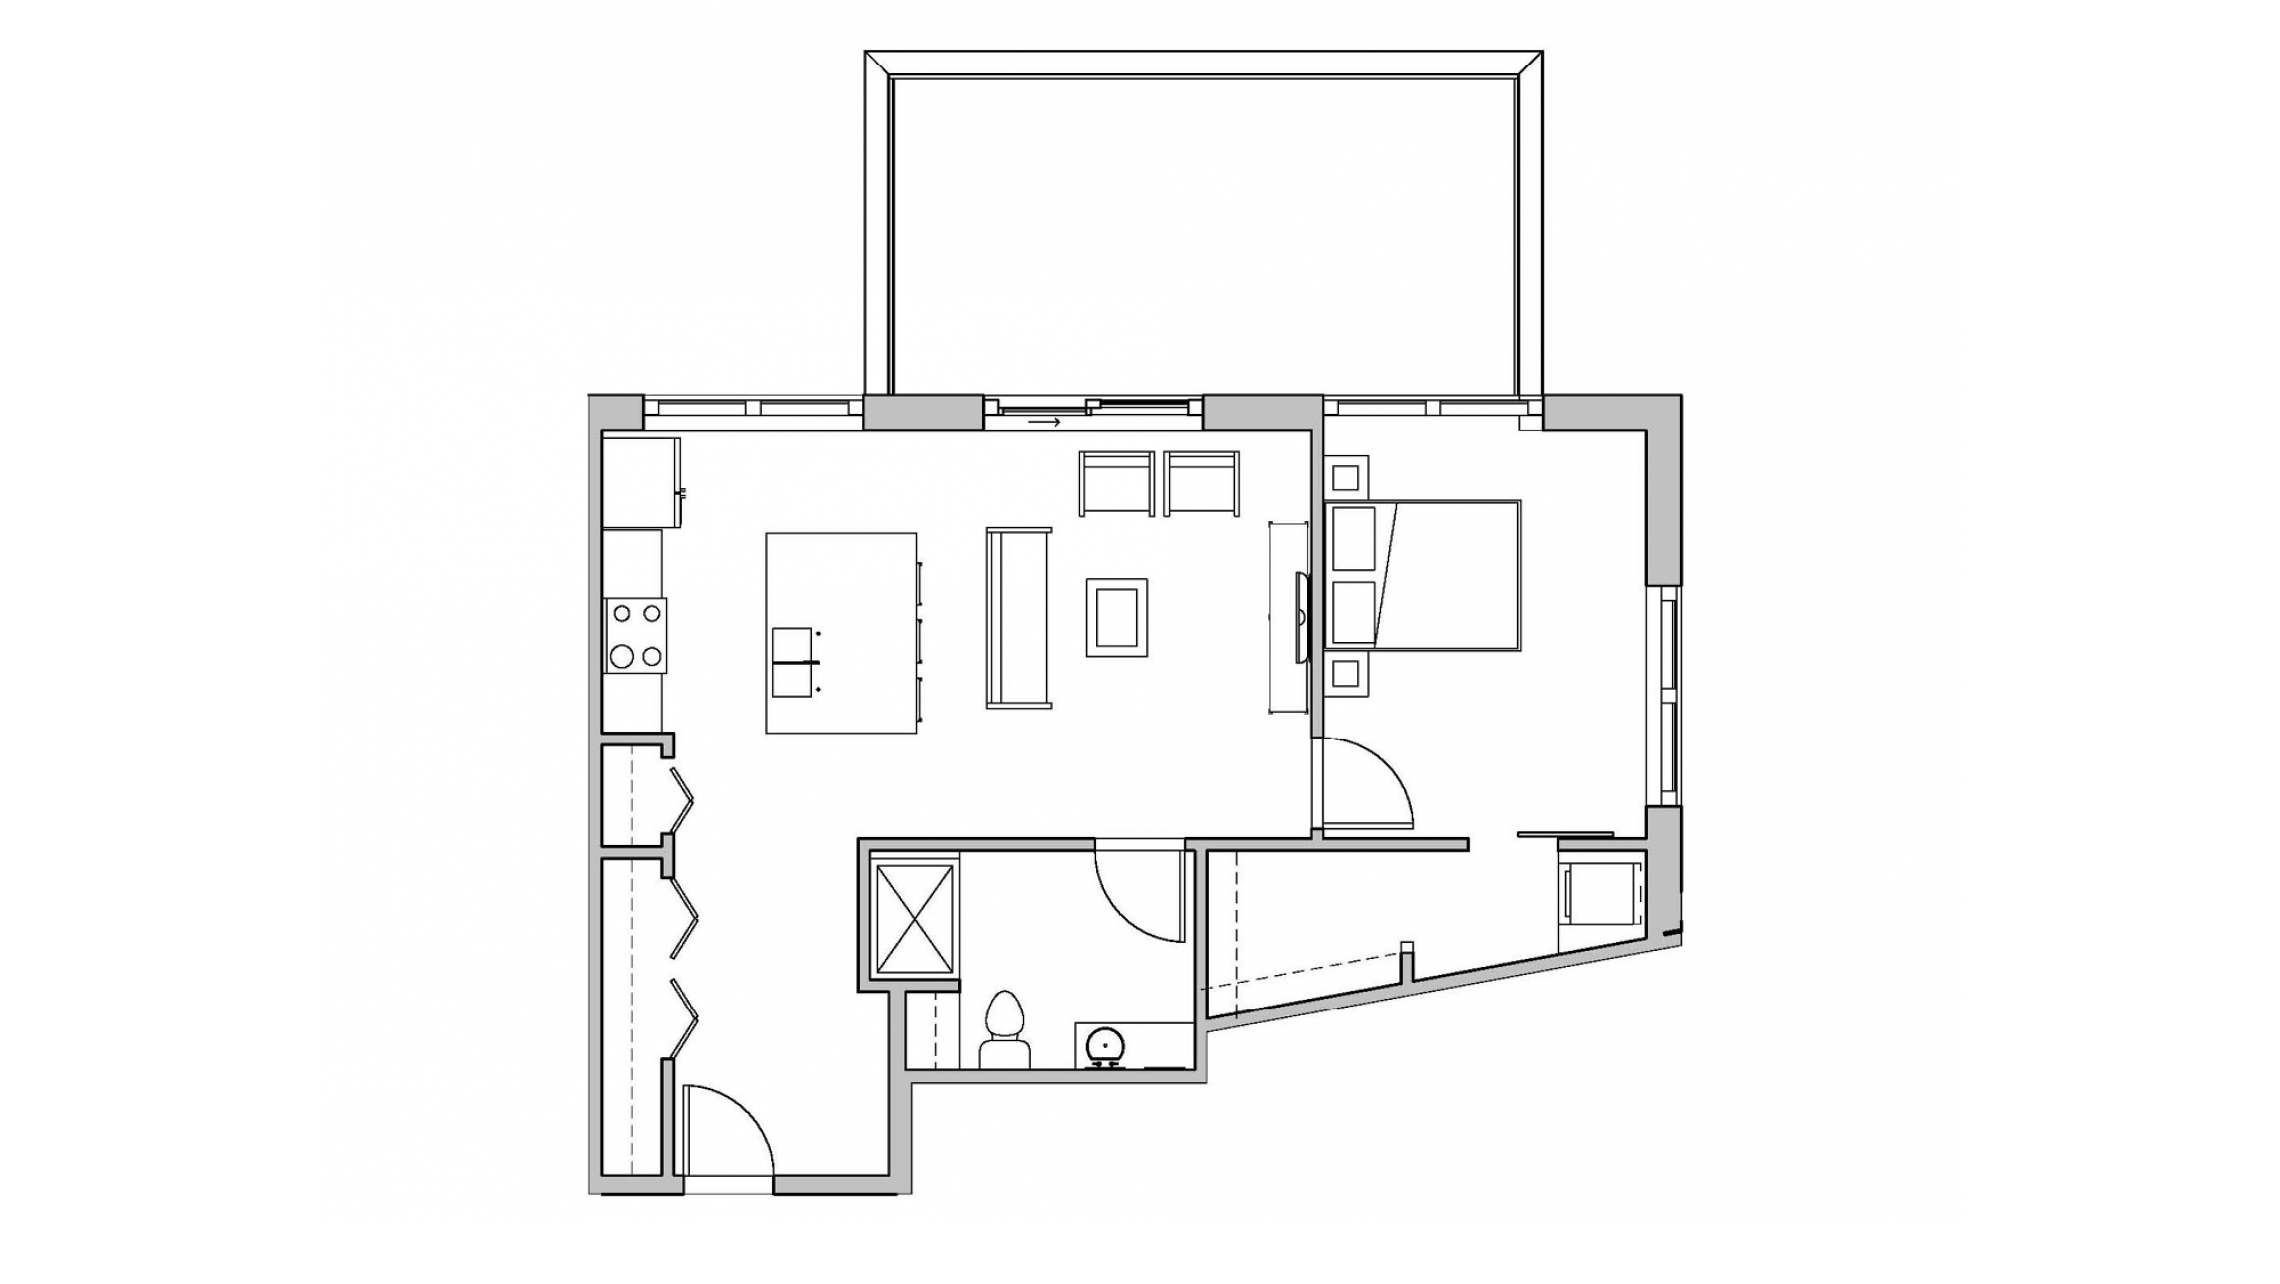 ULI Seven27 310 - One Bedroom, One Bathroom